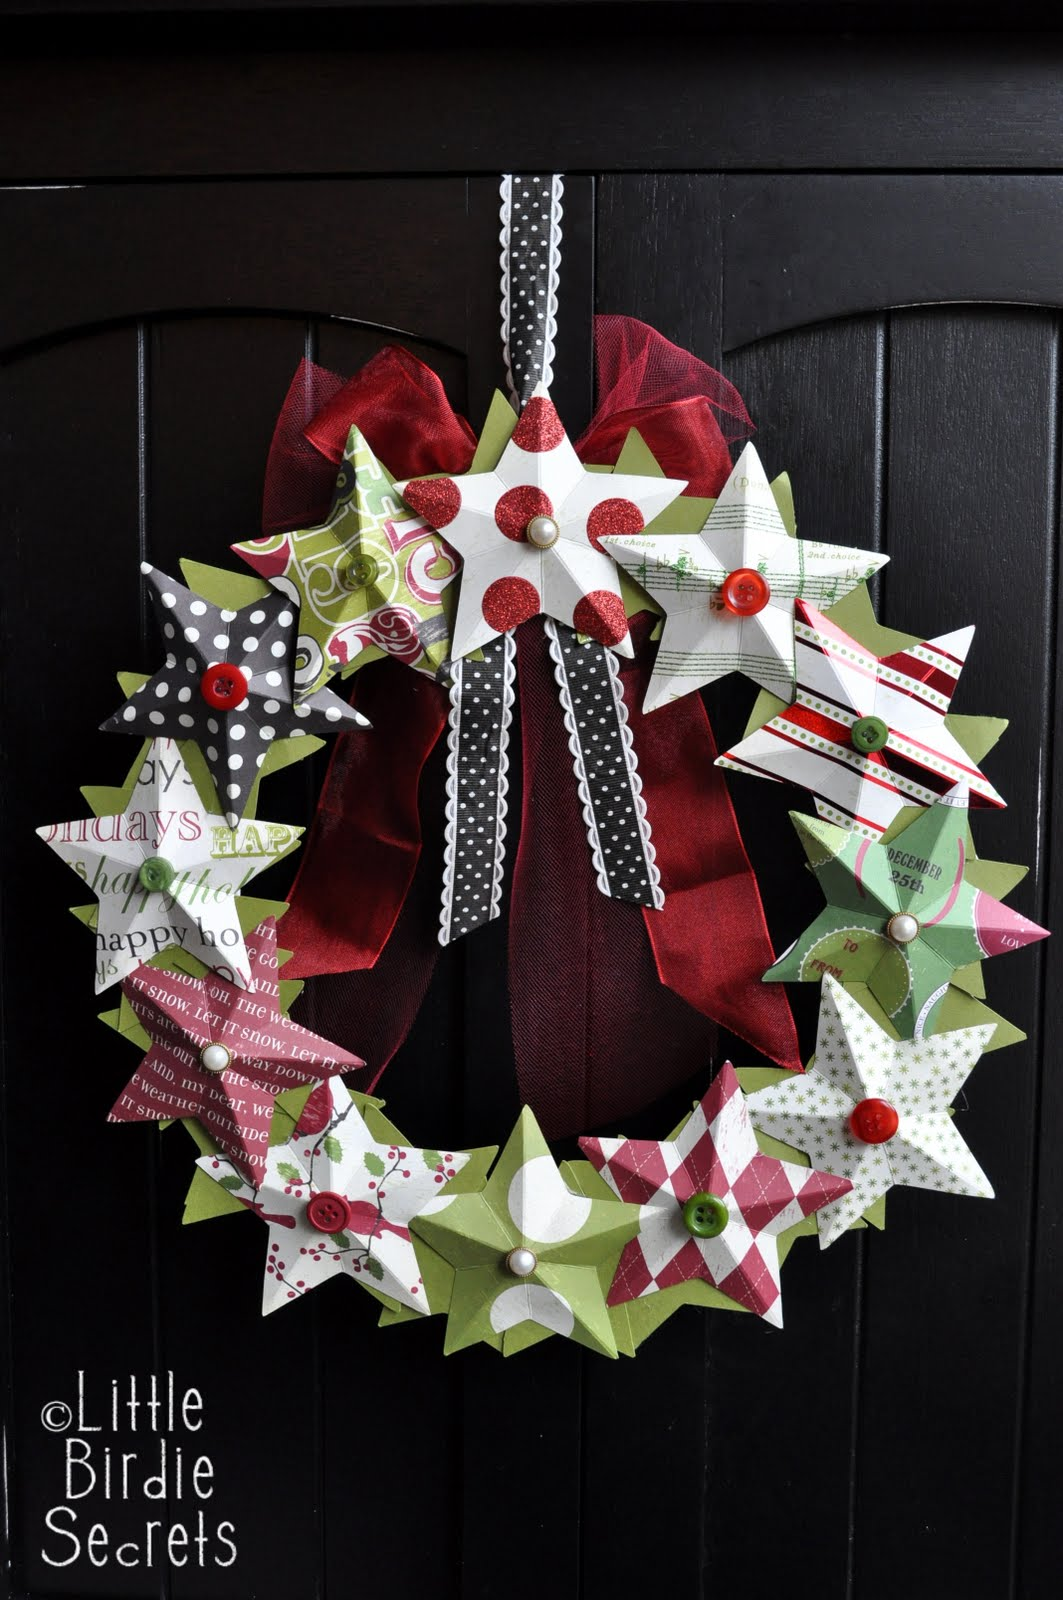 We gathered up over 30 of the BEST DIY Christmas Wreath Ideas to share with you today! These ideas are easy to make and a beautiful way to decorate your front door for the Holidays. These ideas are easy to make and a beautiful way to decorate your front door for the Holidays.